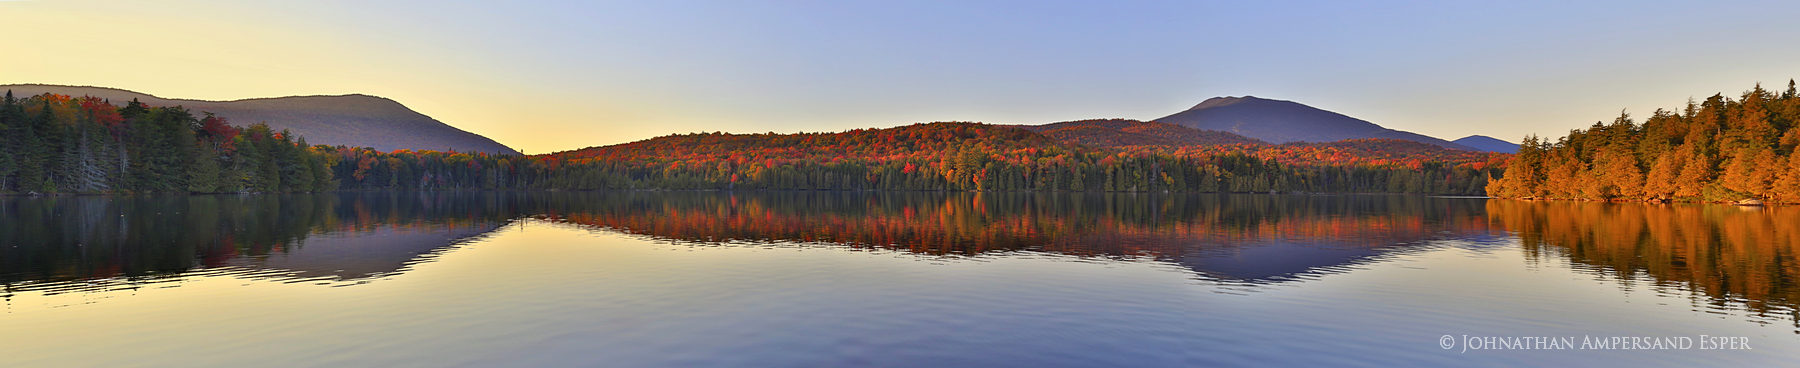 Santanoni Lake,Lake Santanoni,Santanoni,reflection,Santanoni Peak,fall,2014,sunset,panorama, photo